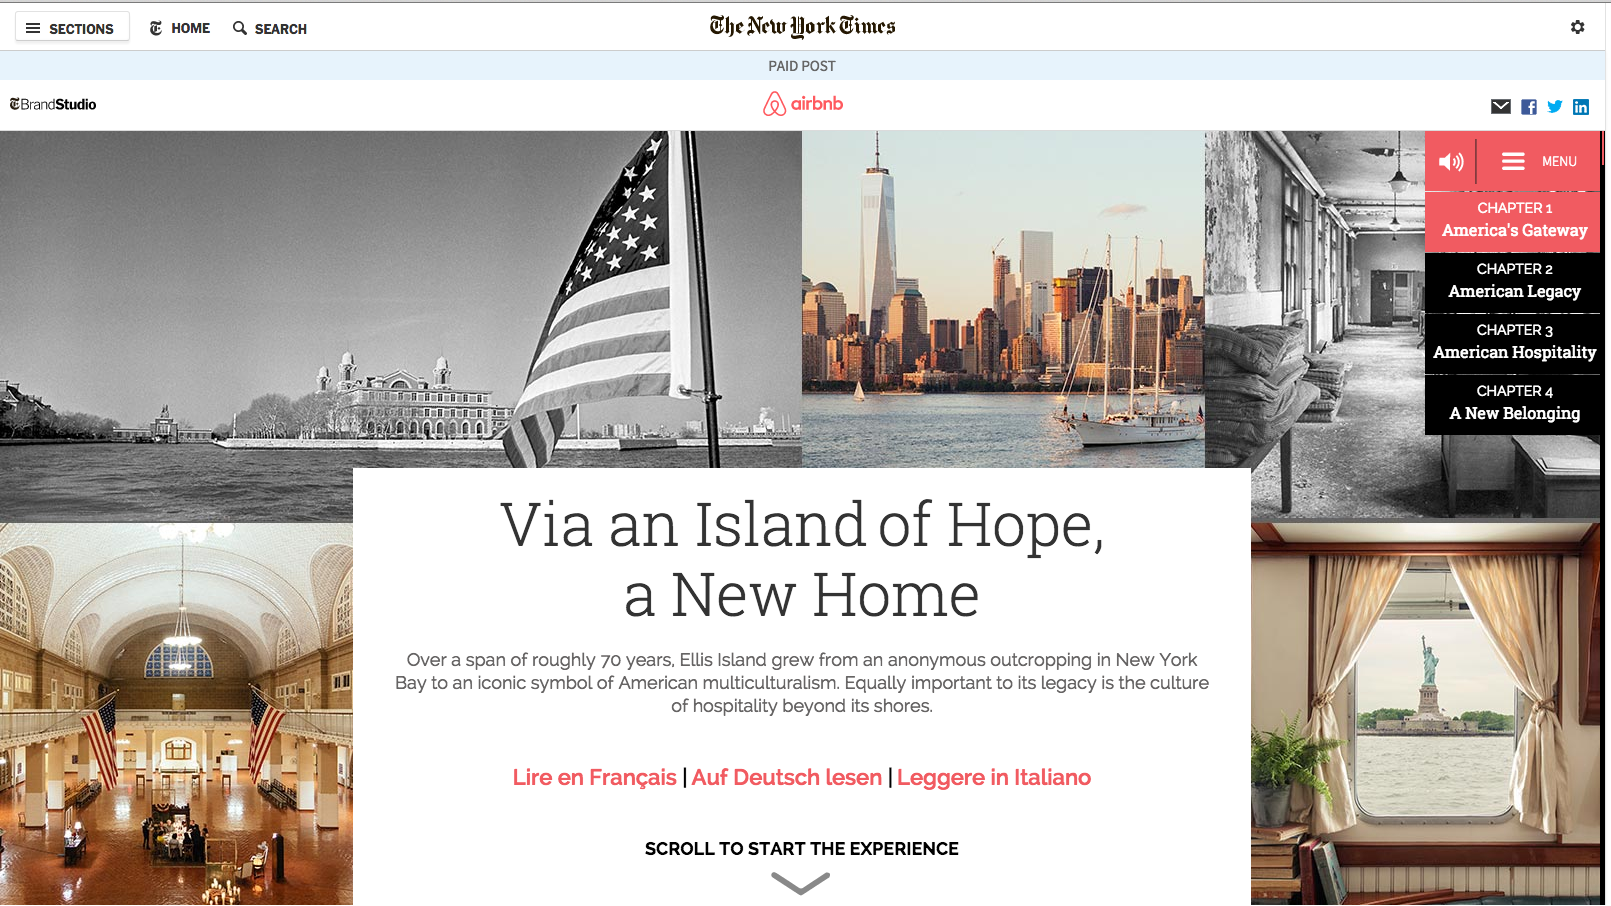 Air BNB on The New York Times: Content Feature—An interactive history of immigration.   Link